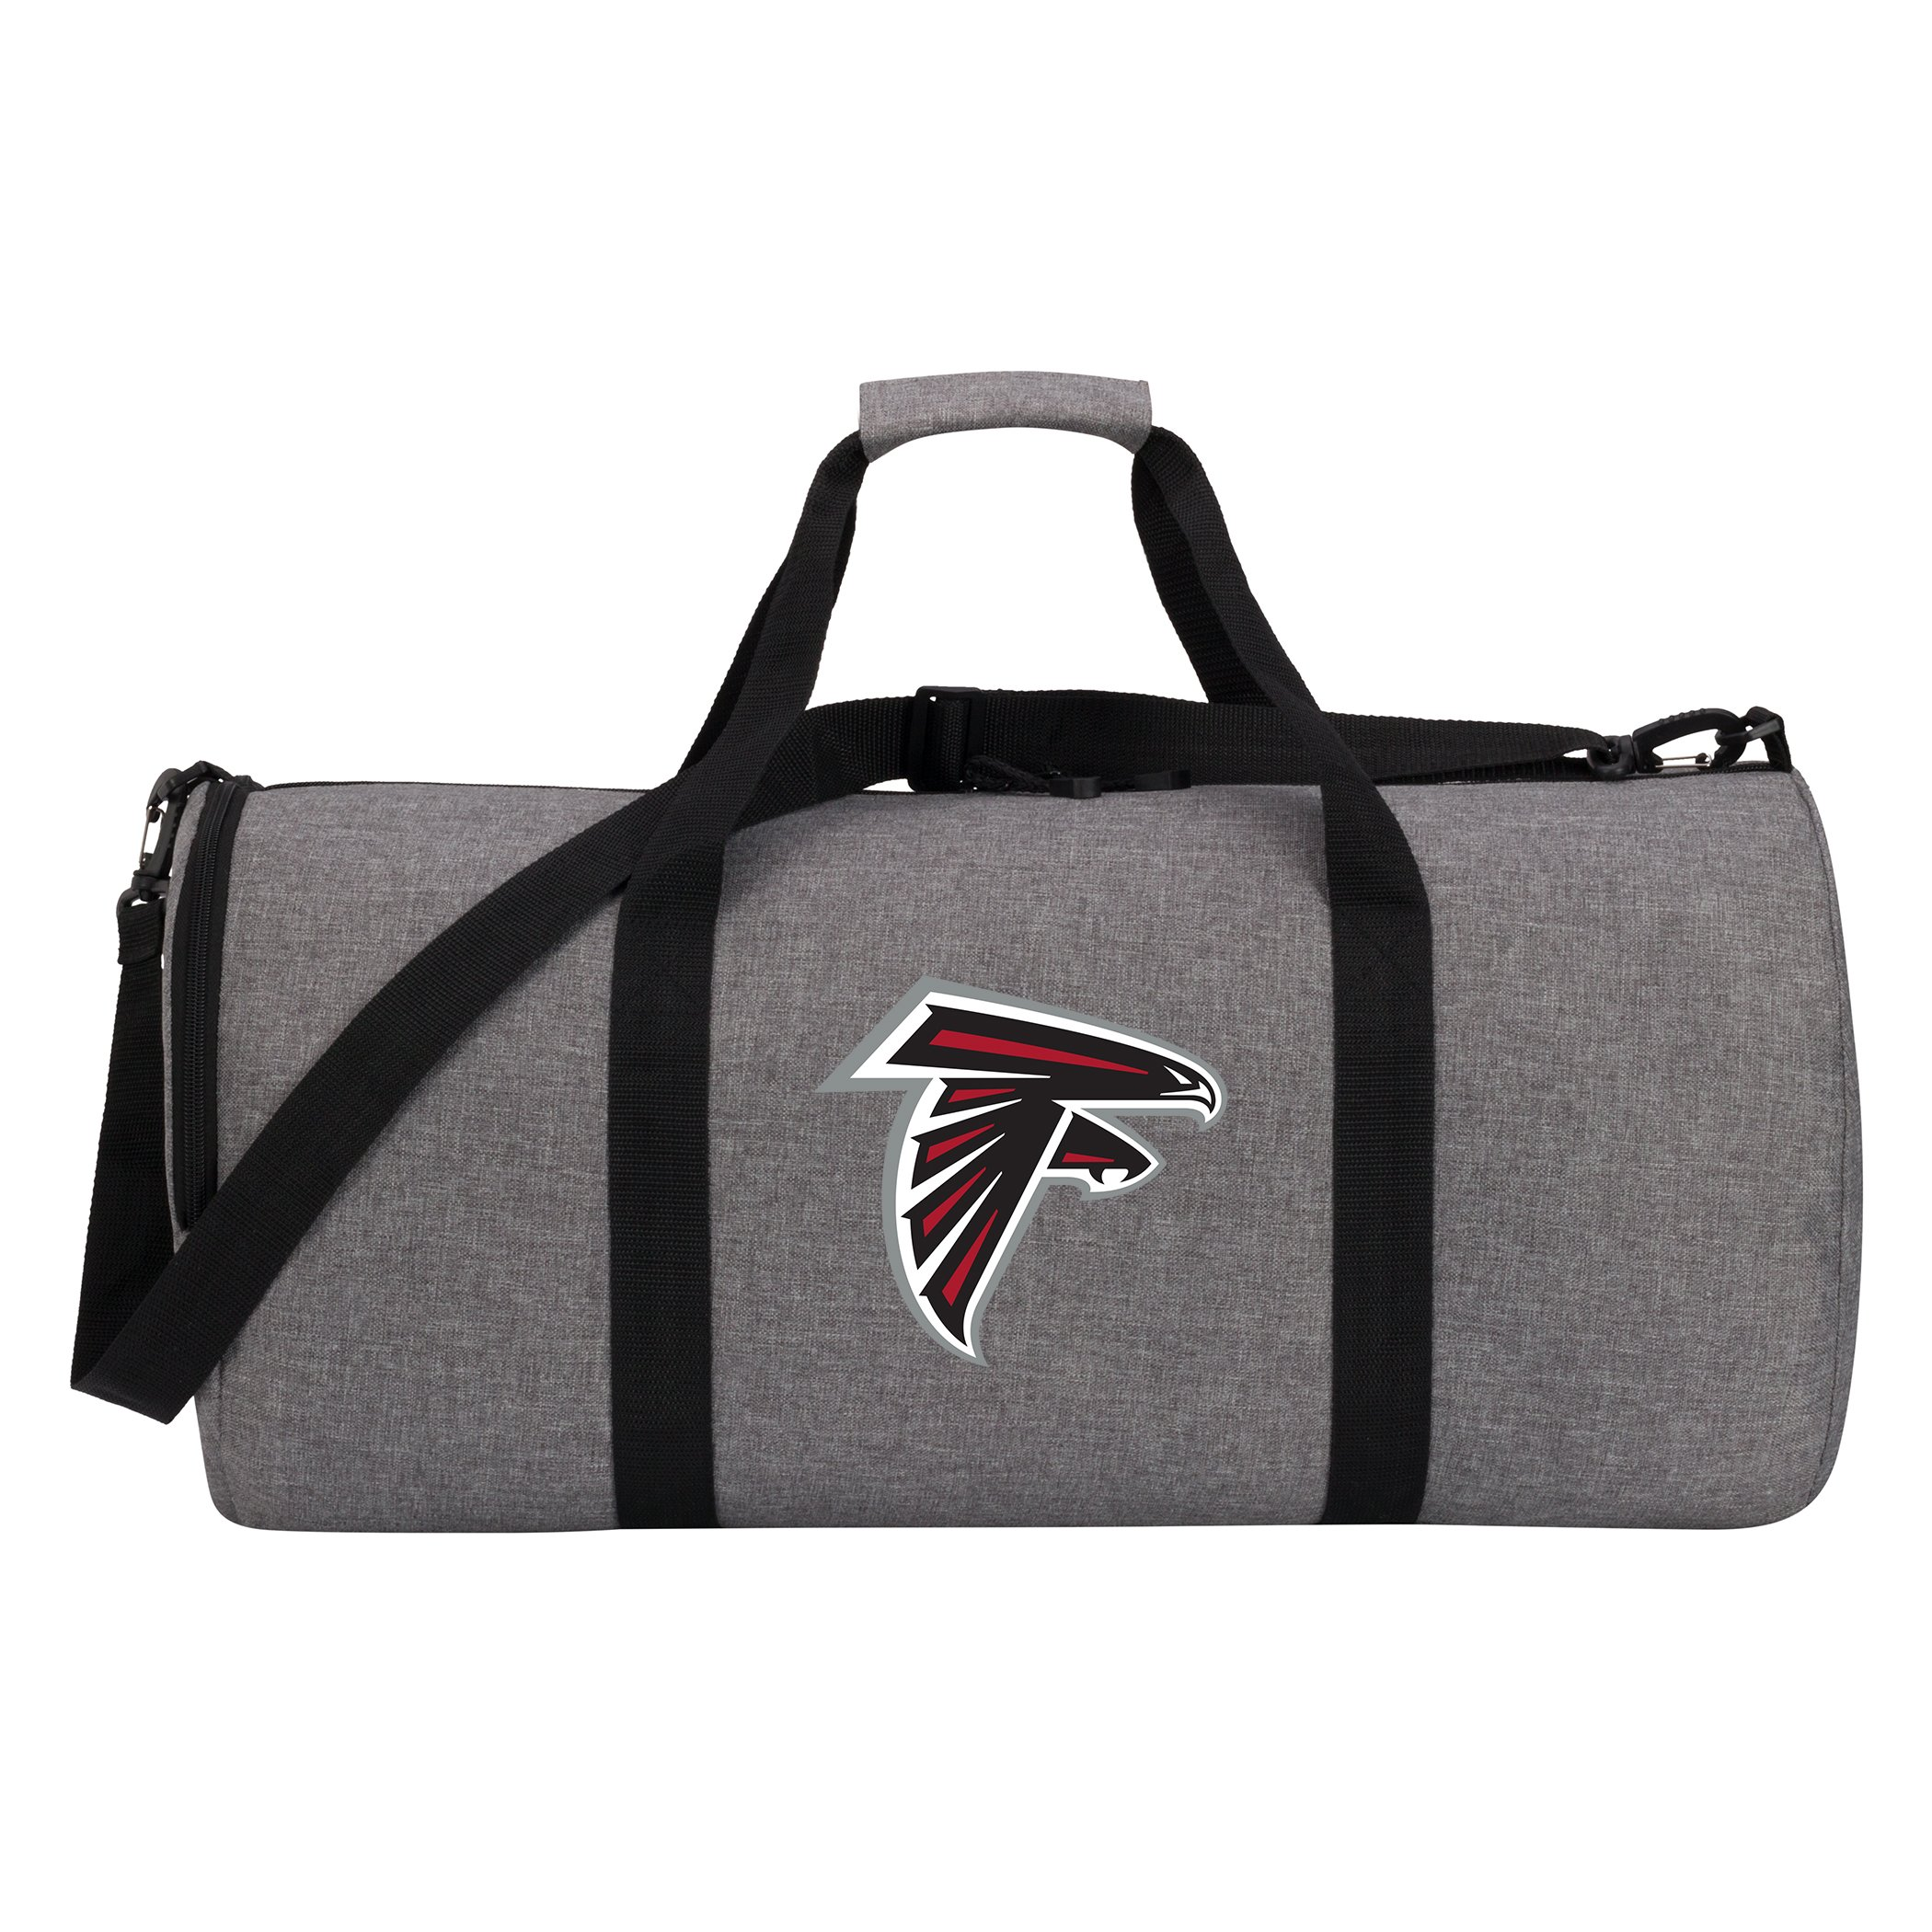 The Northwest Company NFL Atlanta Falcons Duffel Bag, One Size, Gray